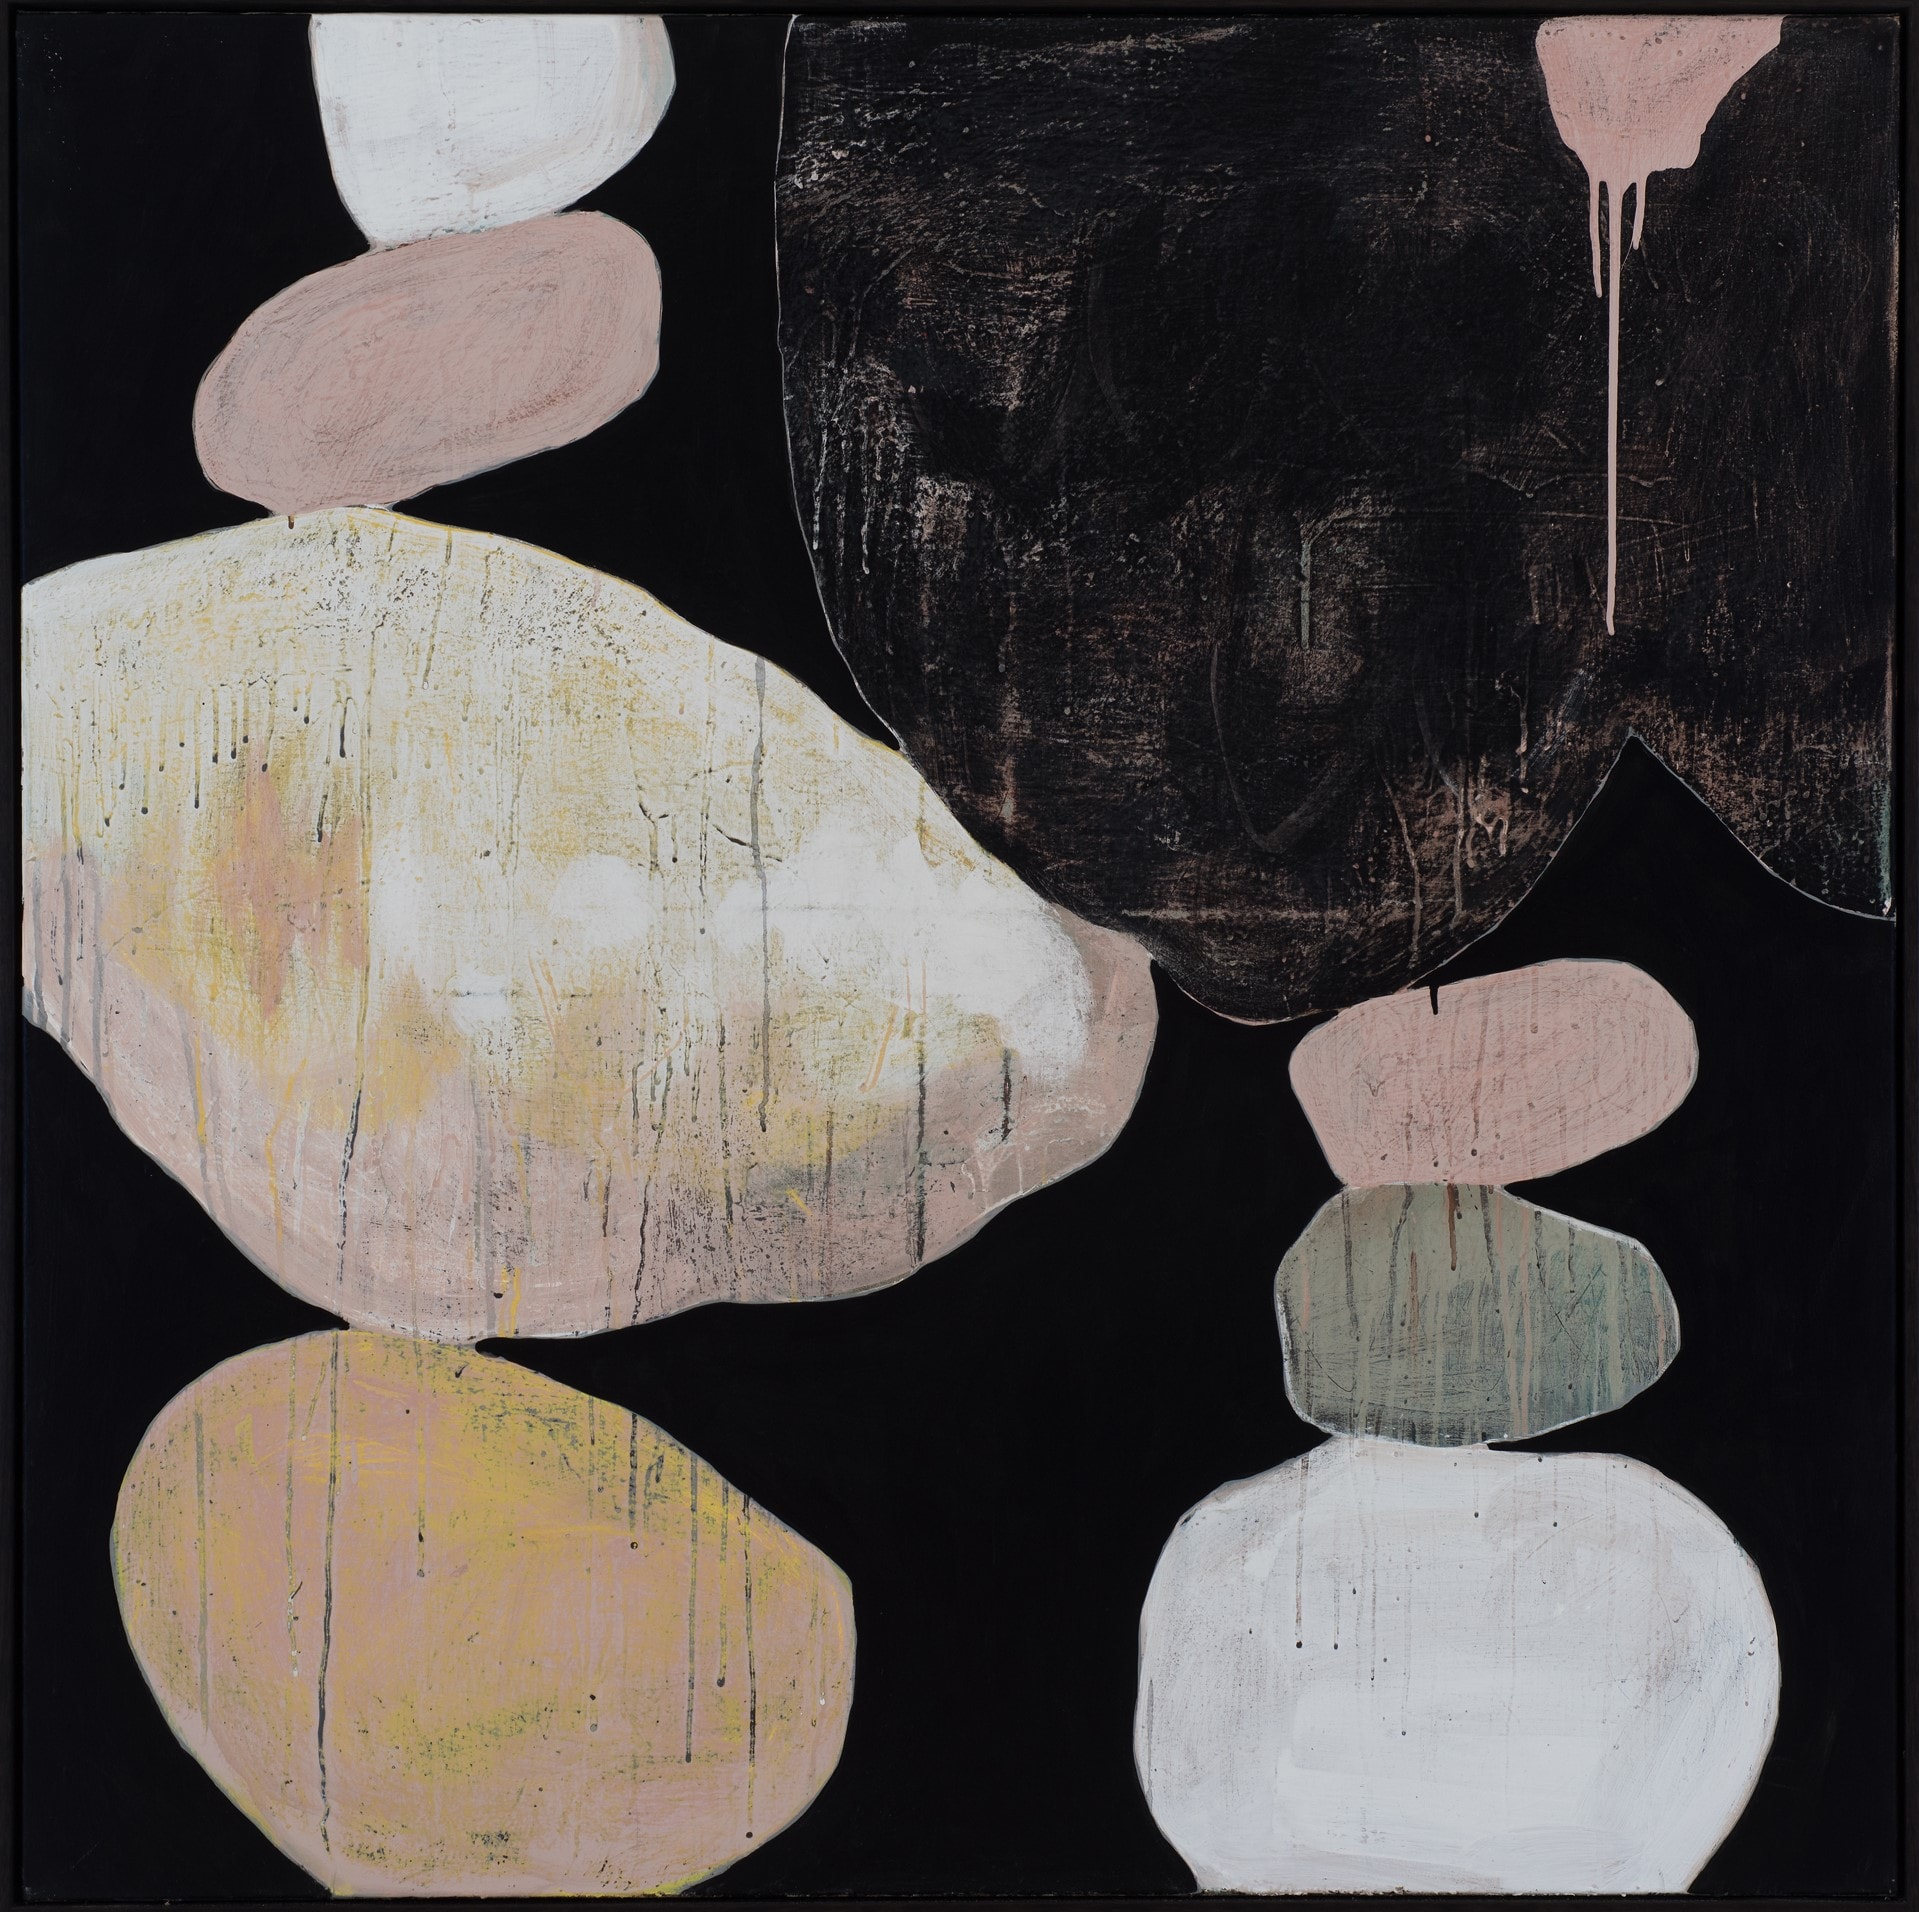 Ngaio Lenz, No. 108, 2017, mixed media on canvas, 122x122cm